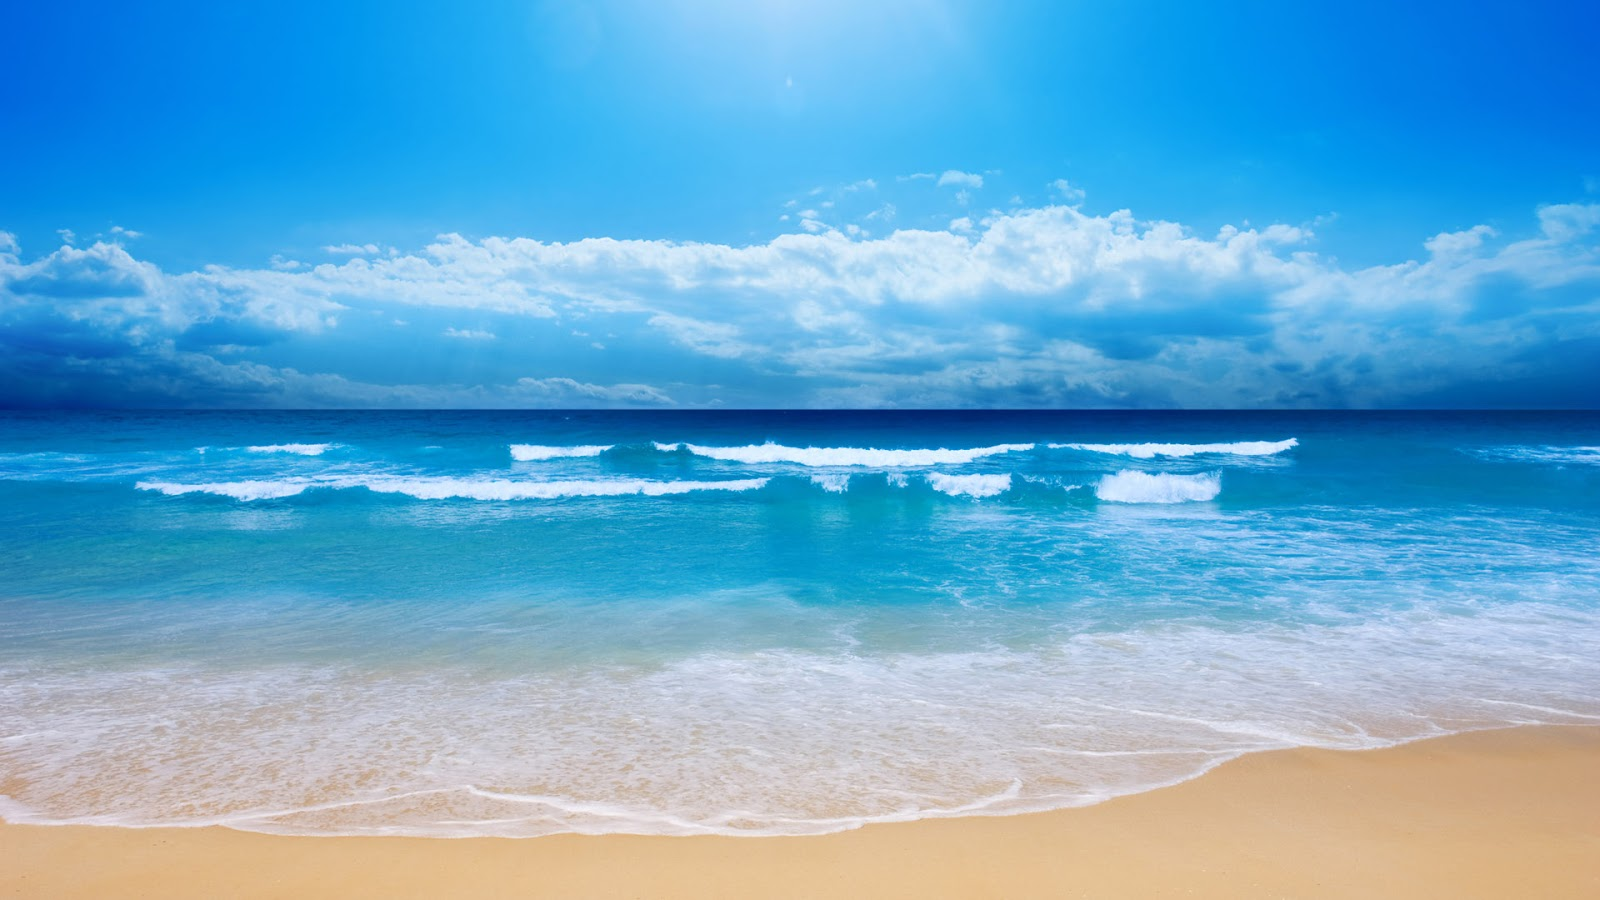 Beautiful beach wallpapers